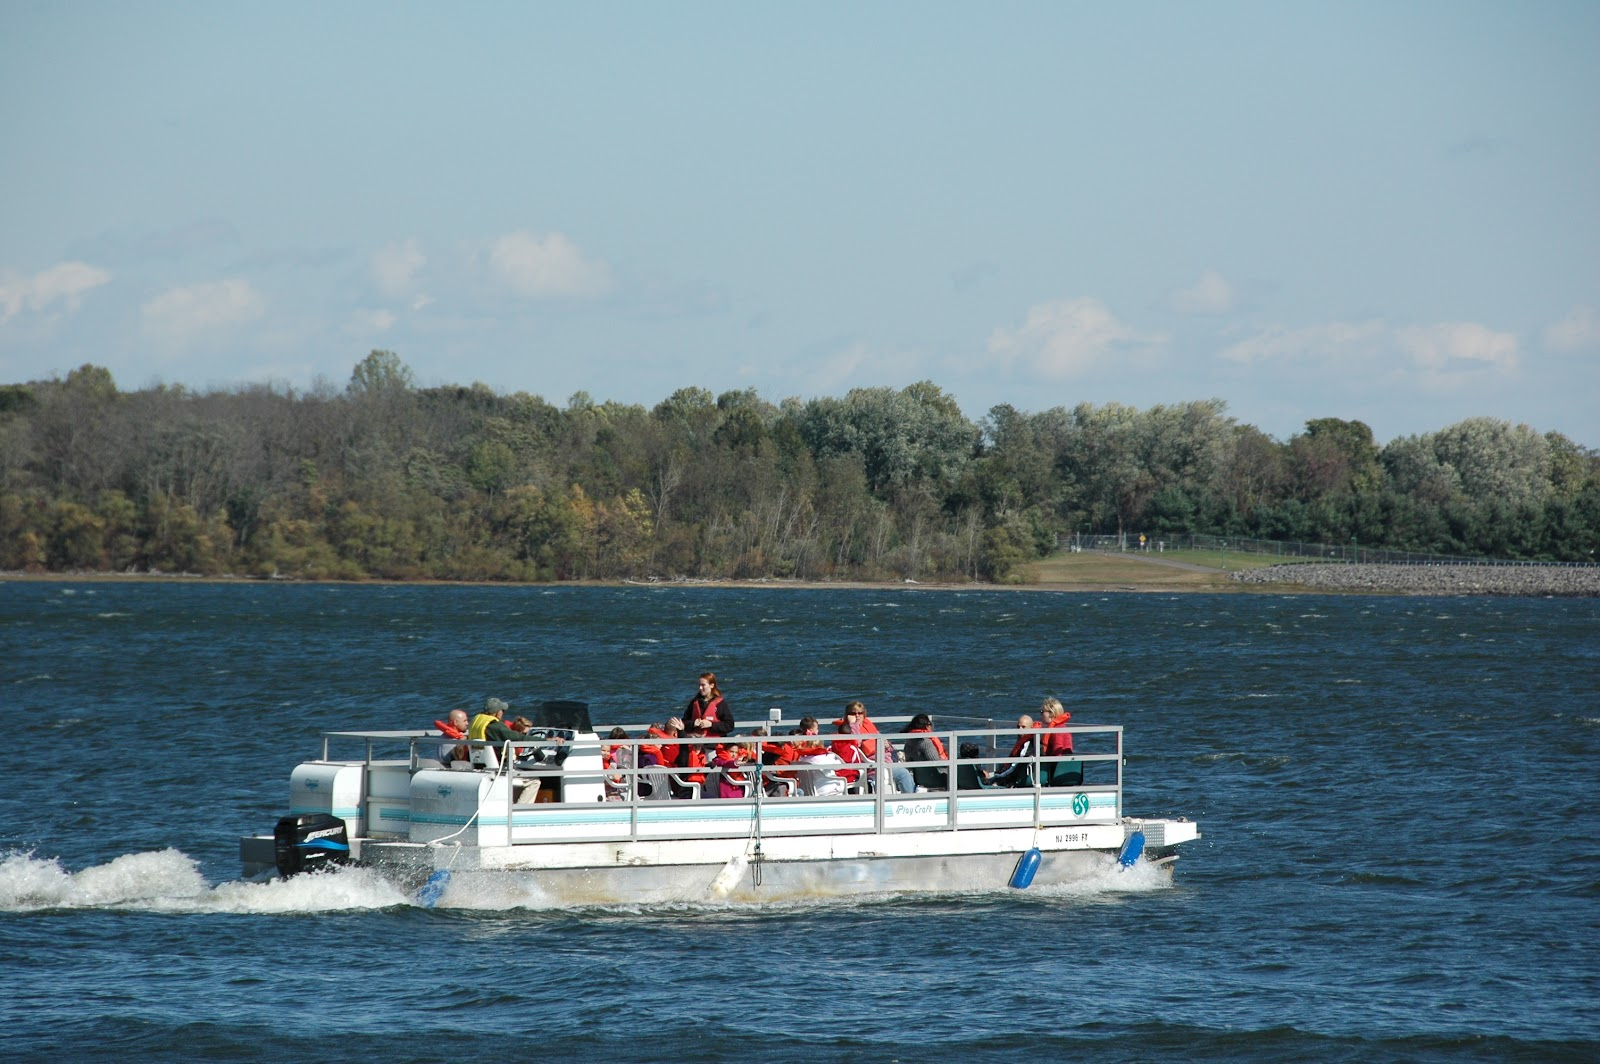 Boat Tours on the Manasquan Reservoir